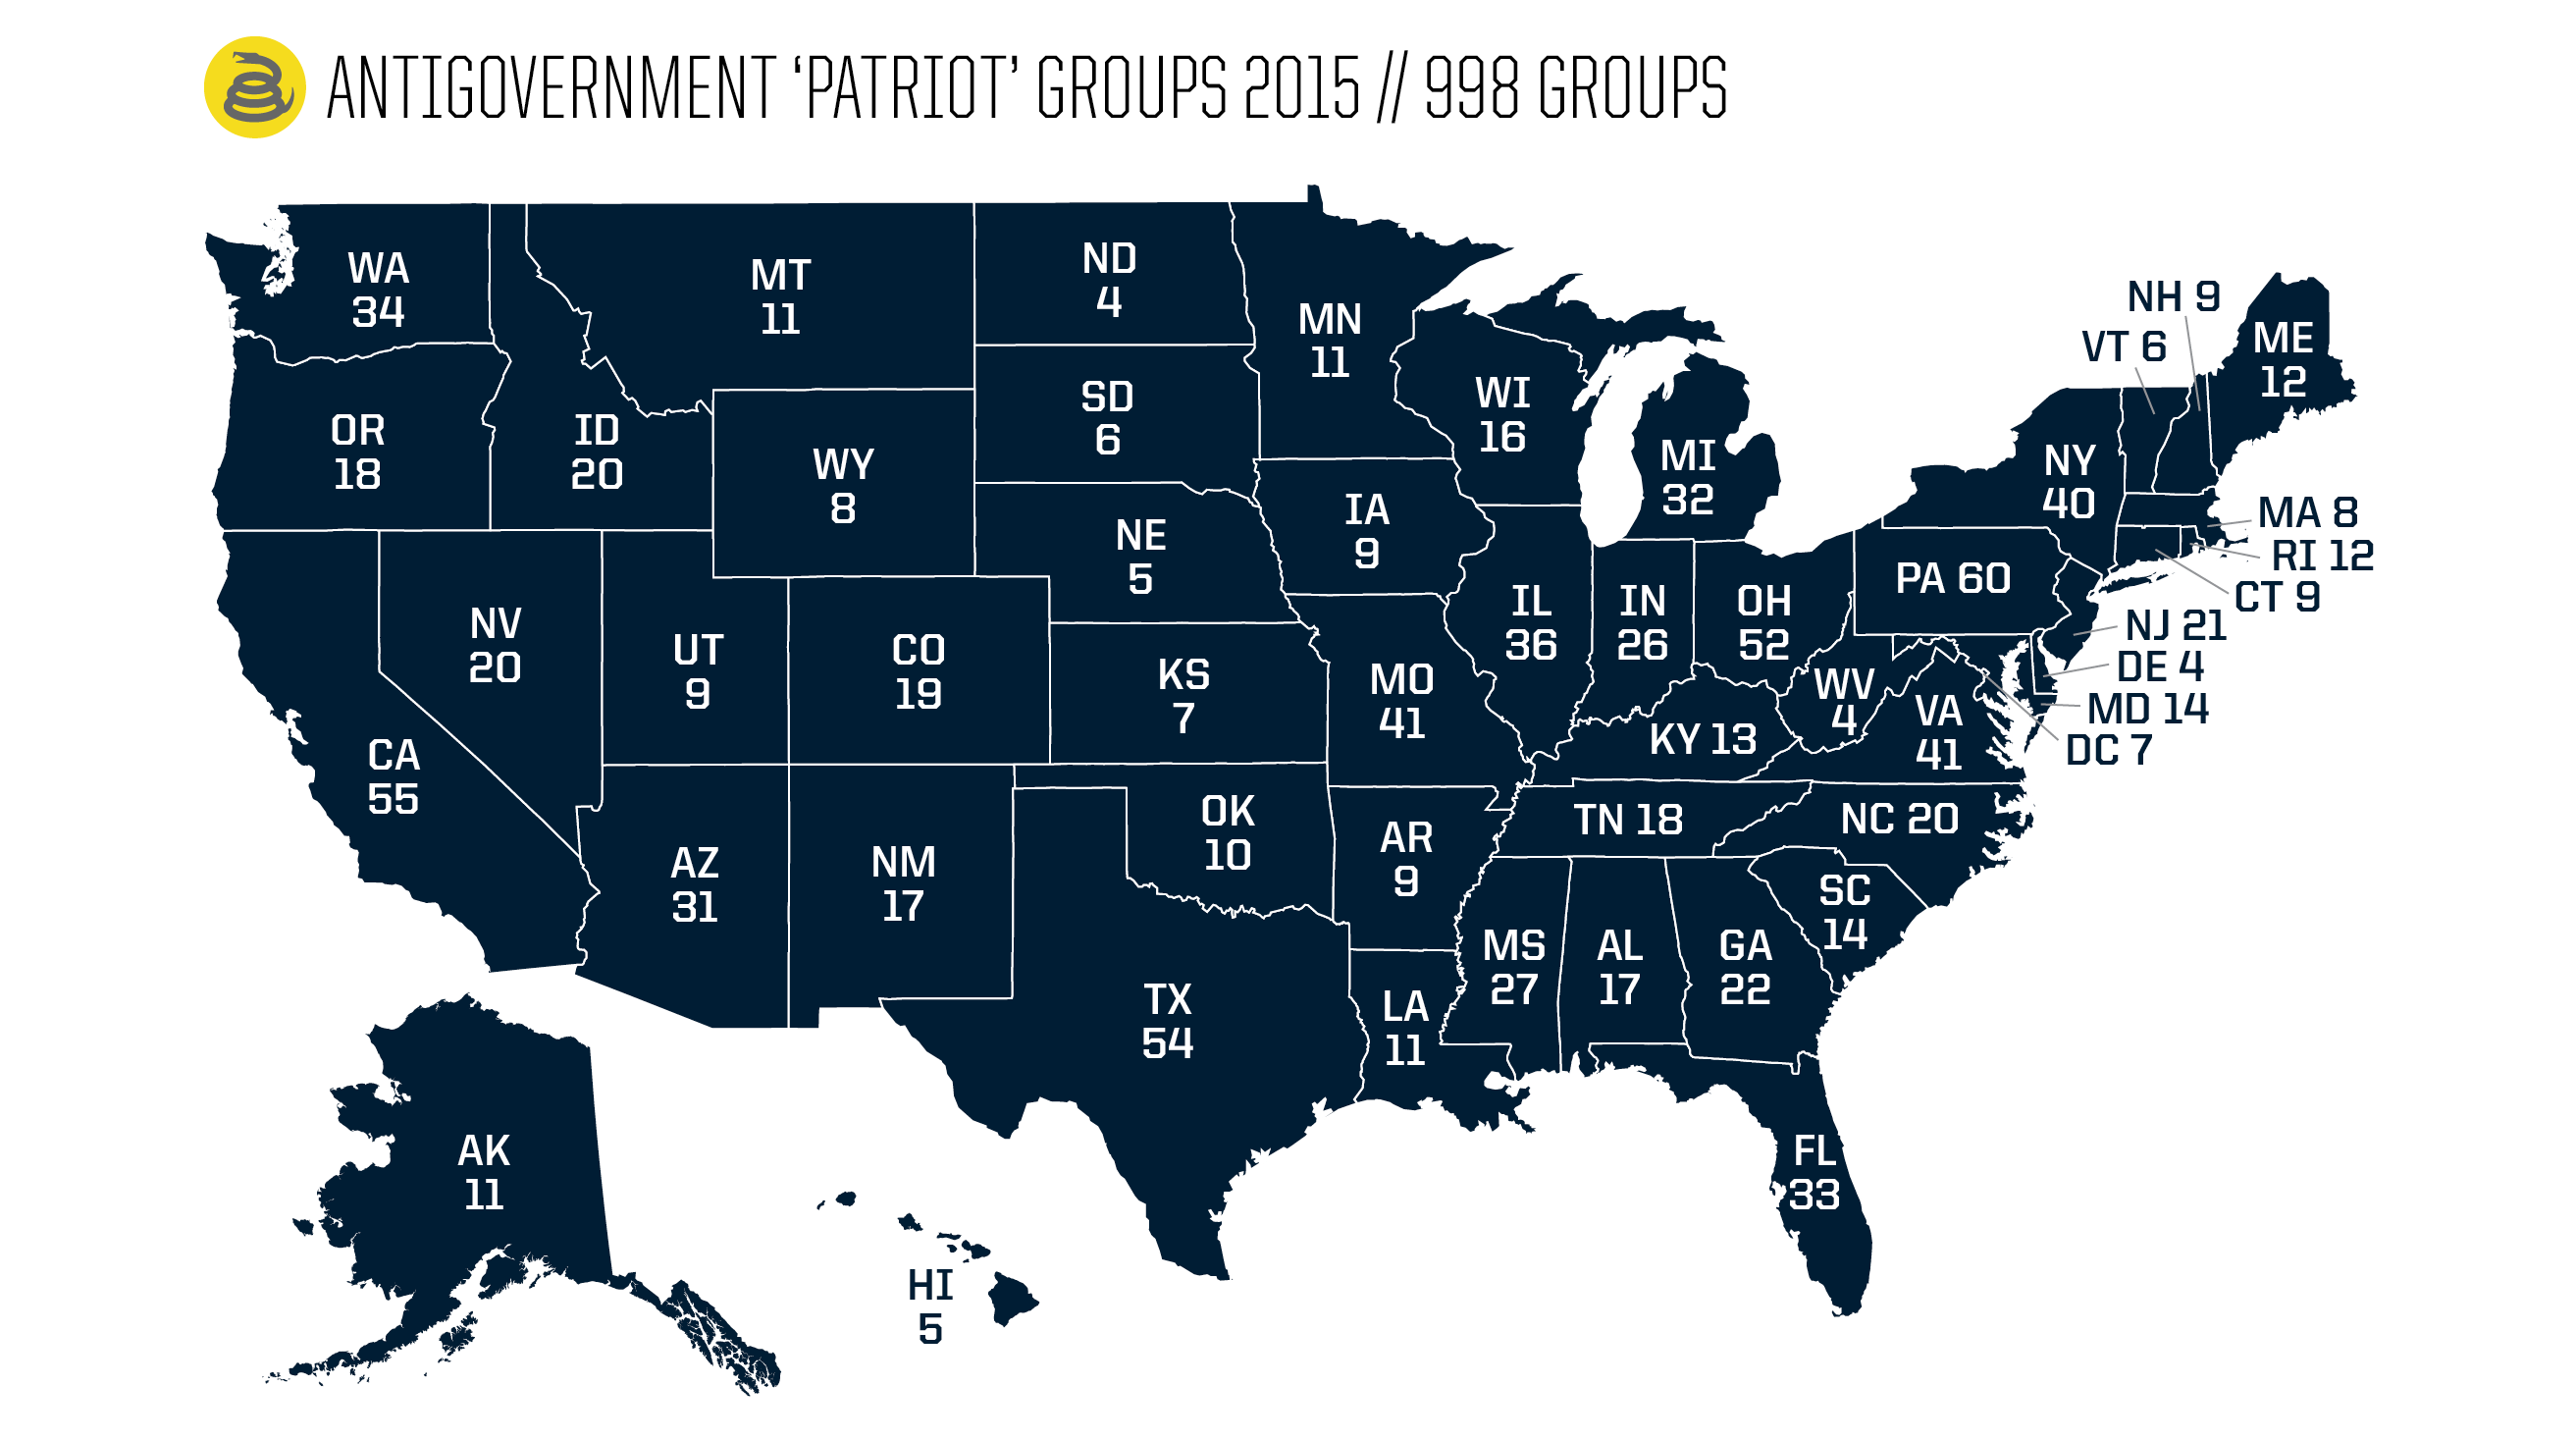 https://www.splcenter.org/sites/default/files/patriot-group-map2015_splc.png